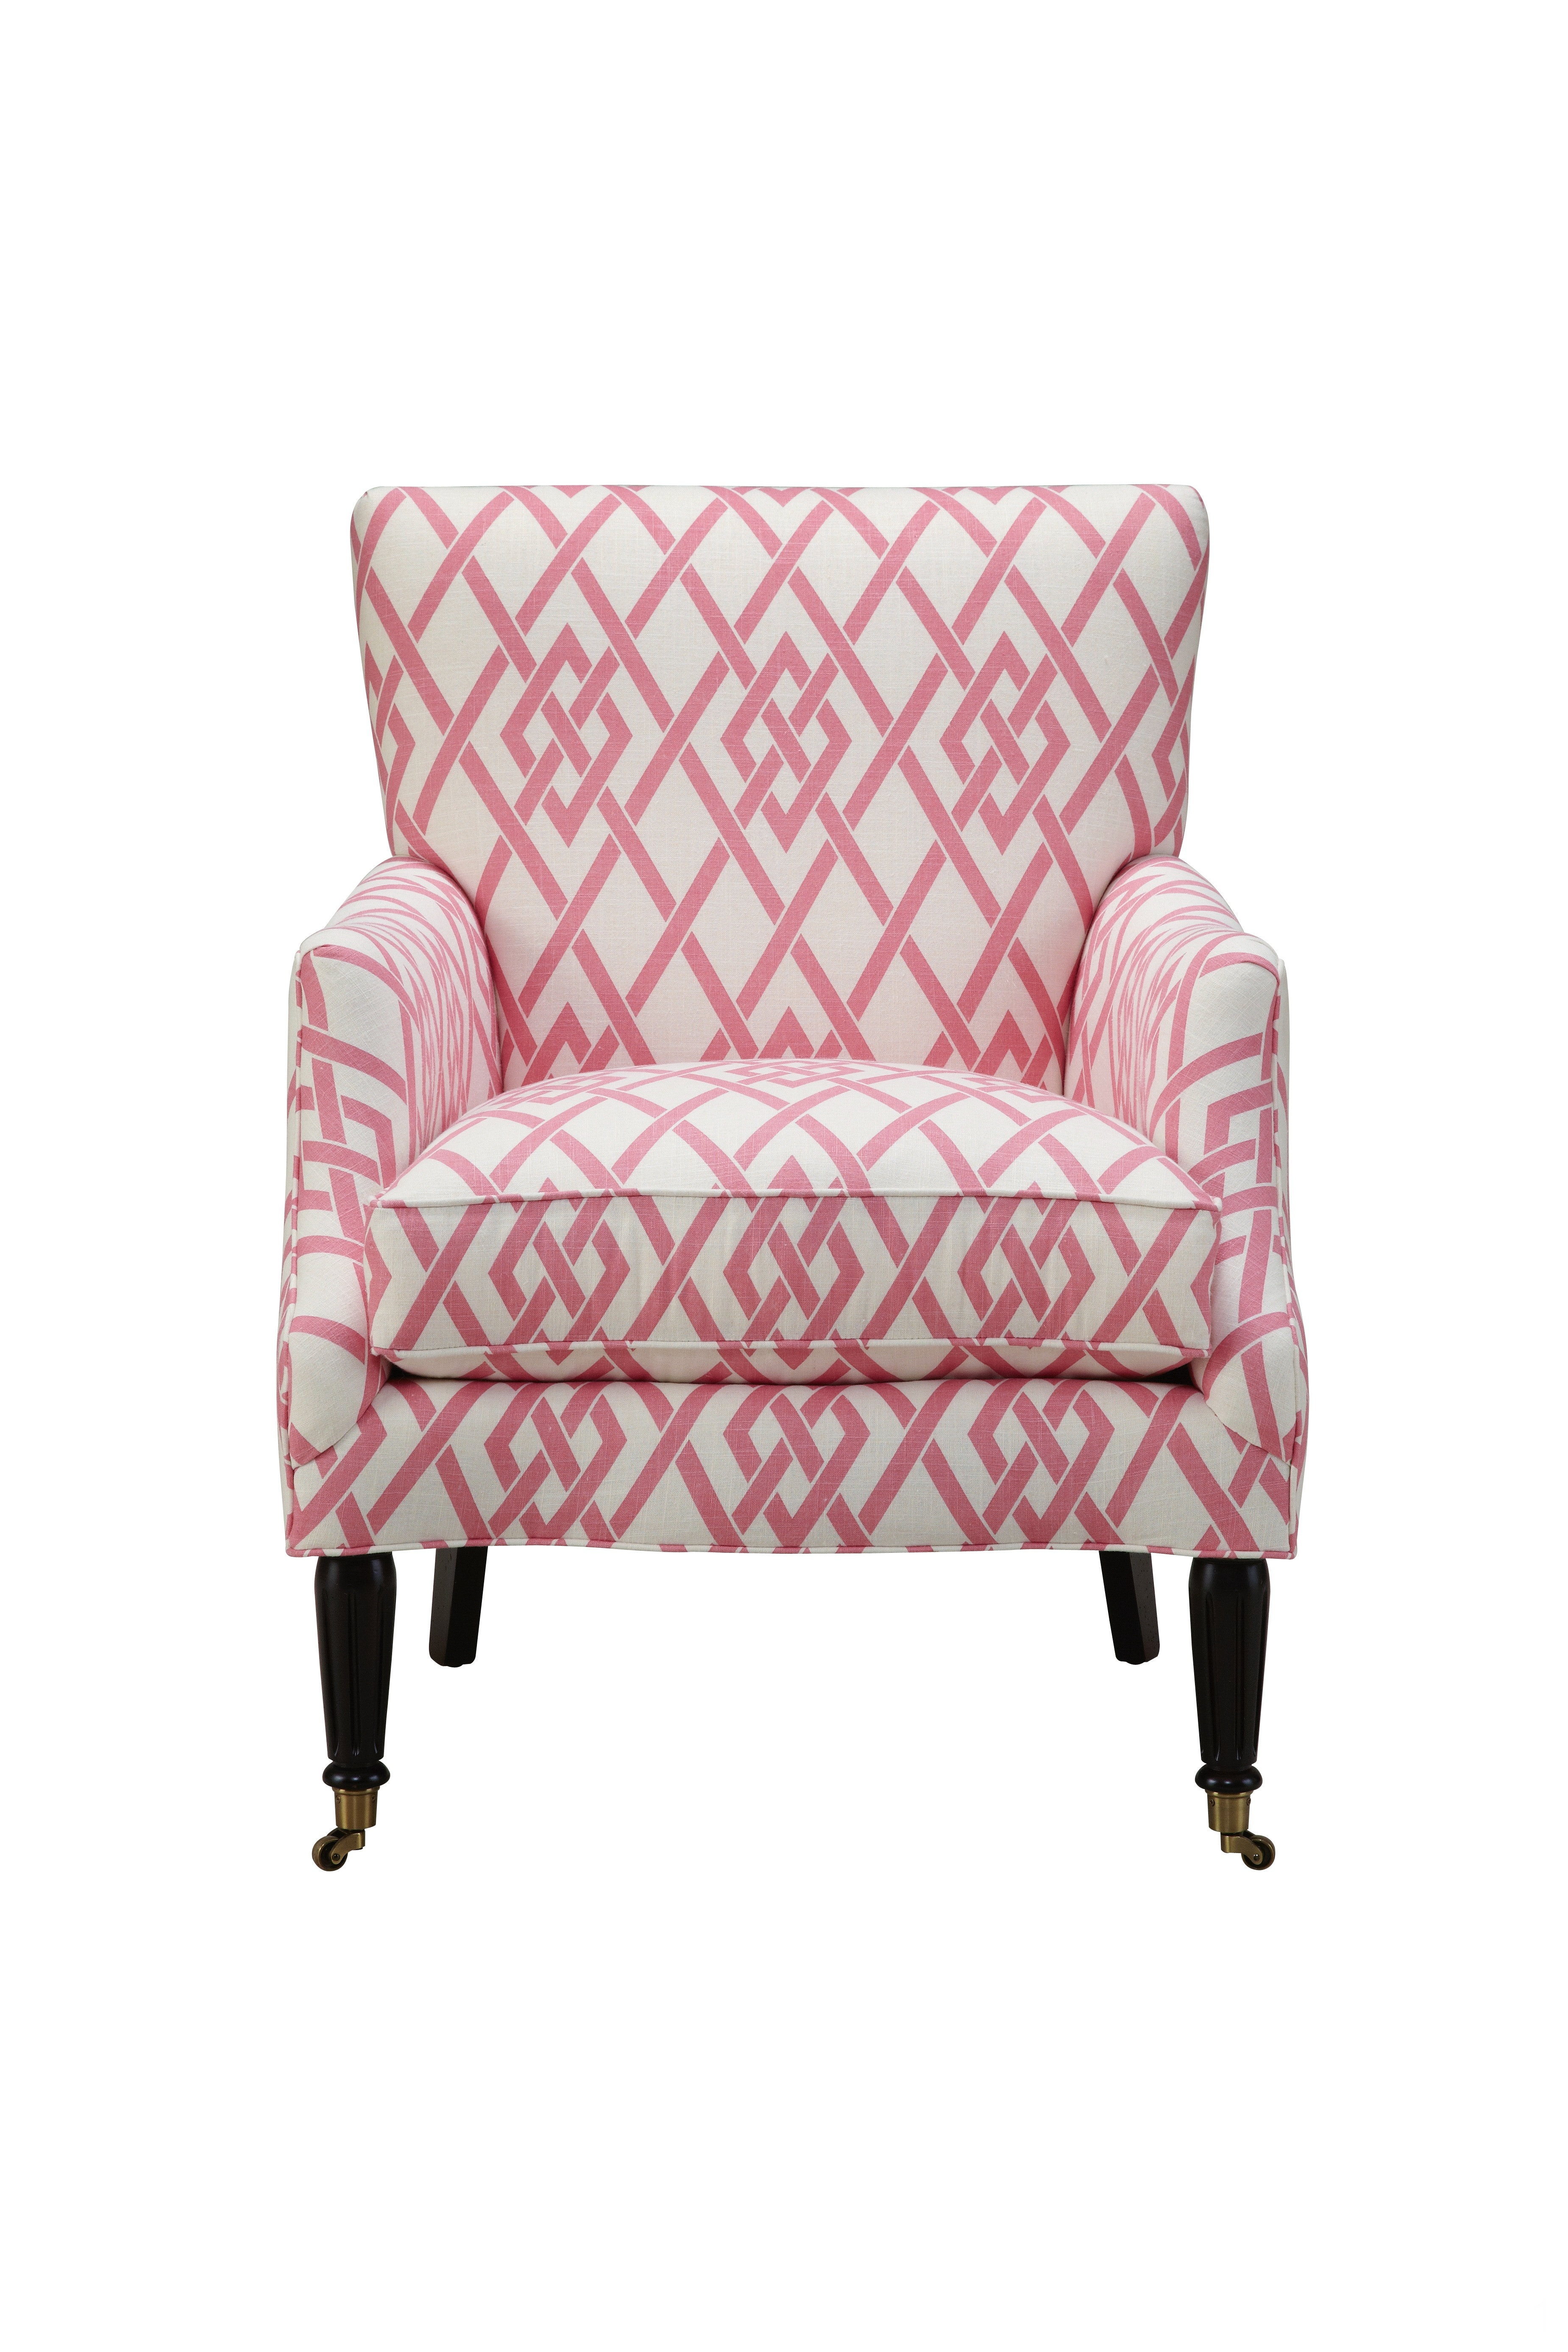 Wes 1 Bella Chair WES6091 From Walter E. Smithe Furniture + Design